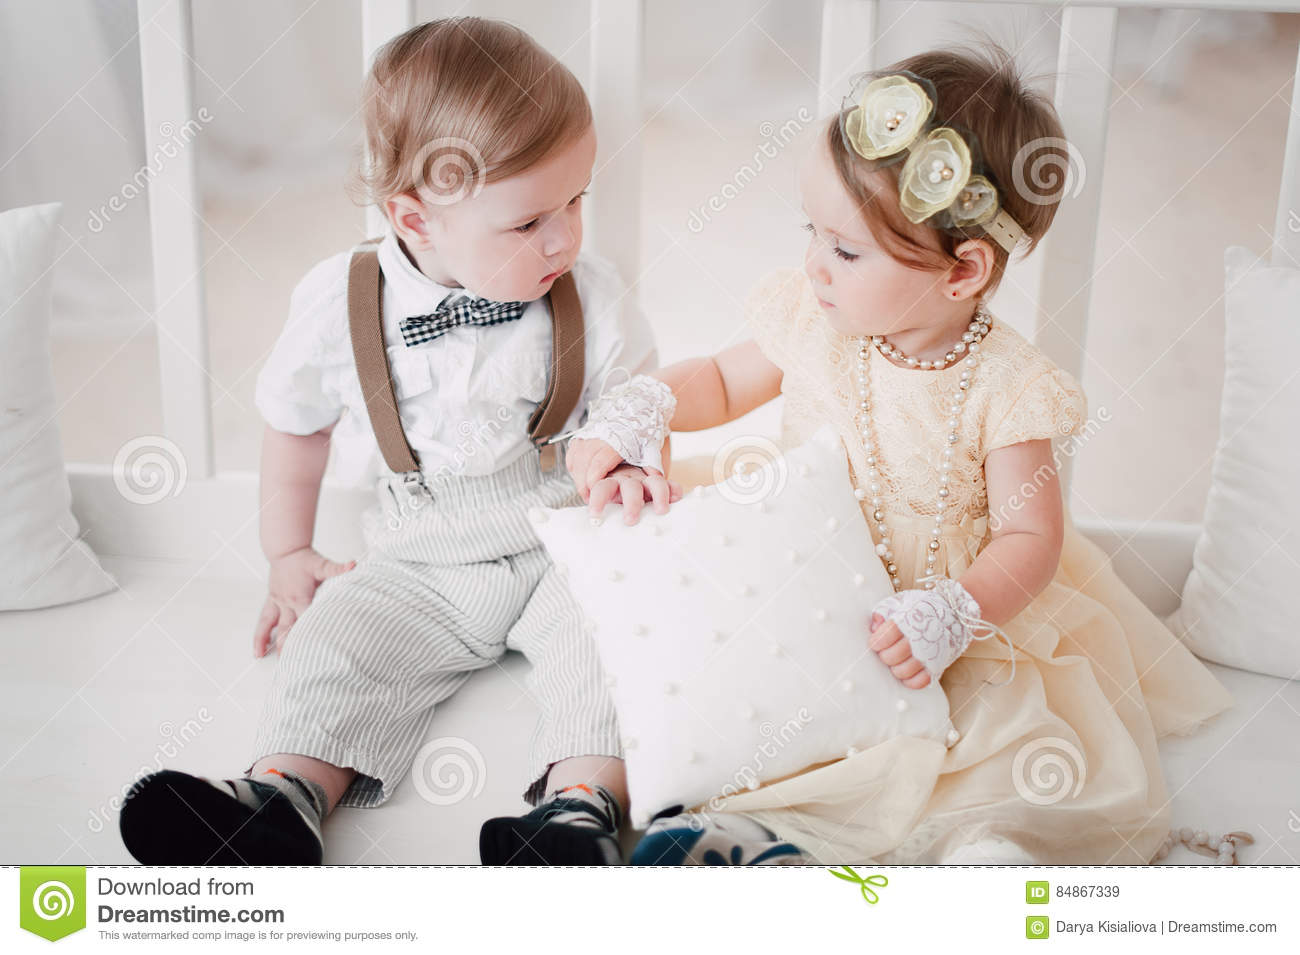 two babies wedding boy and girl dressed as bride and